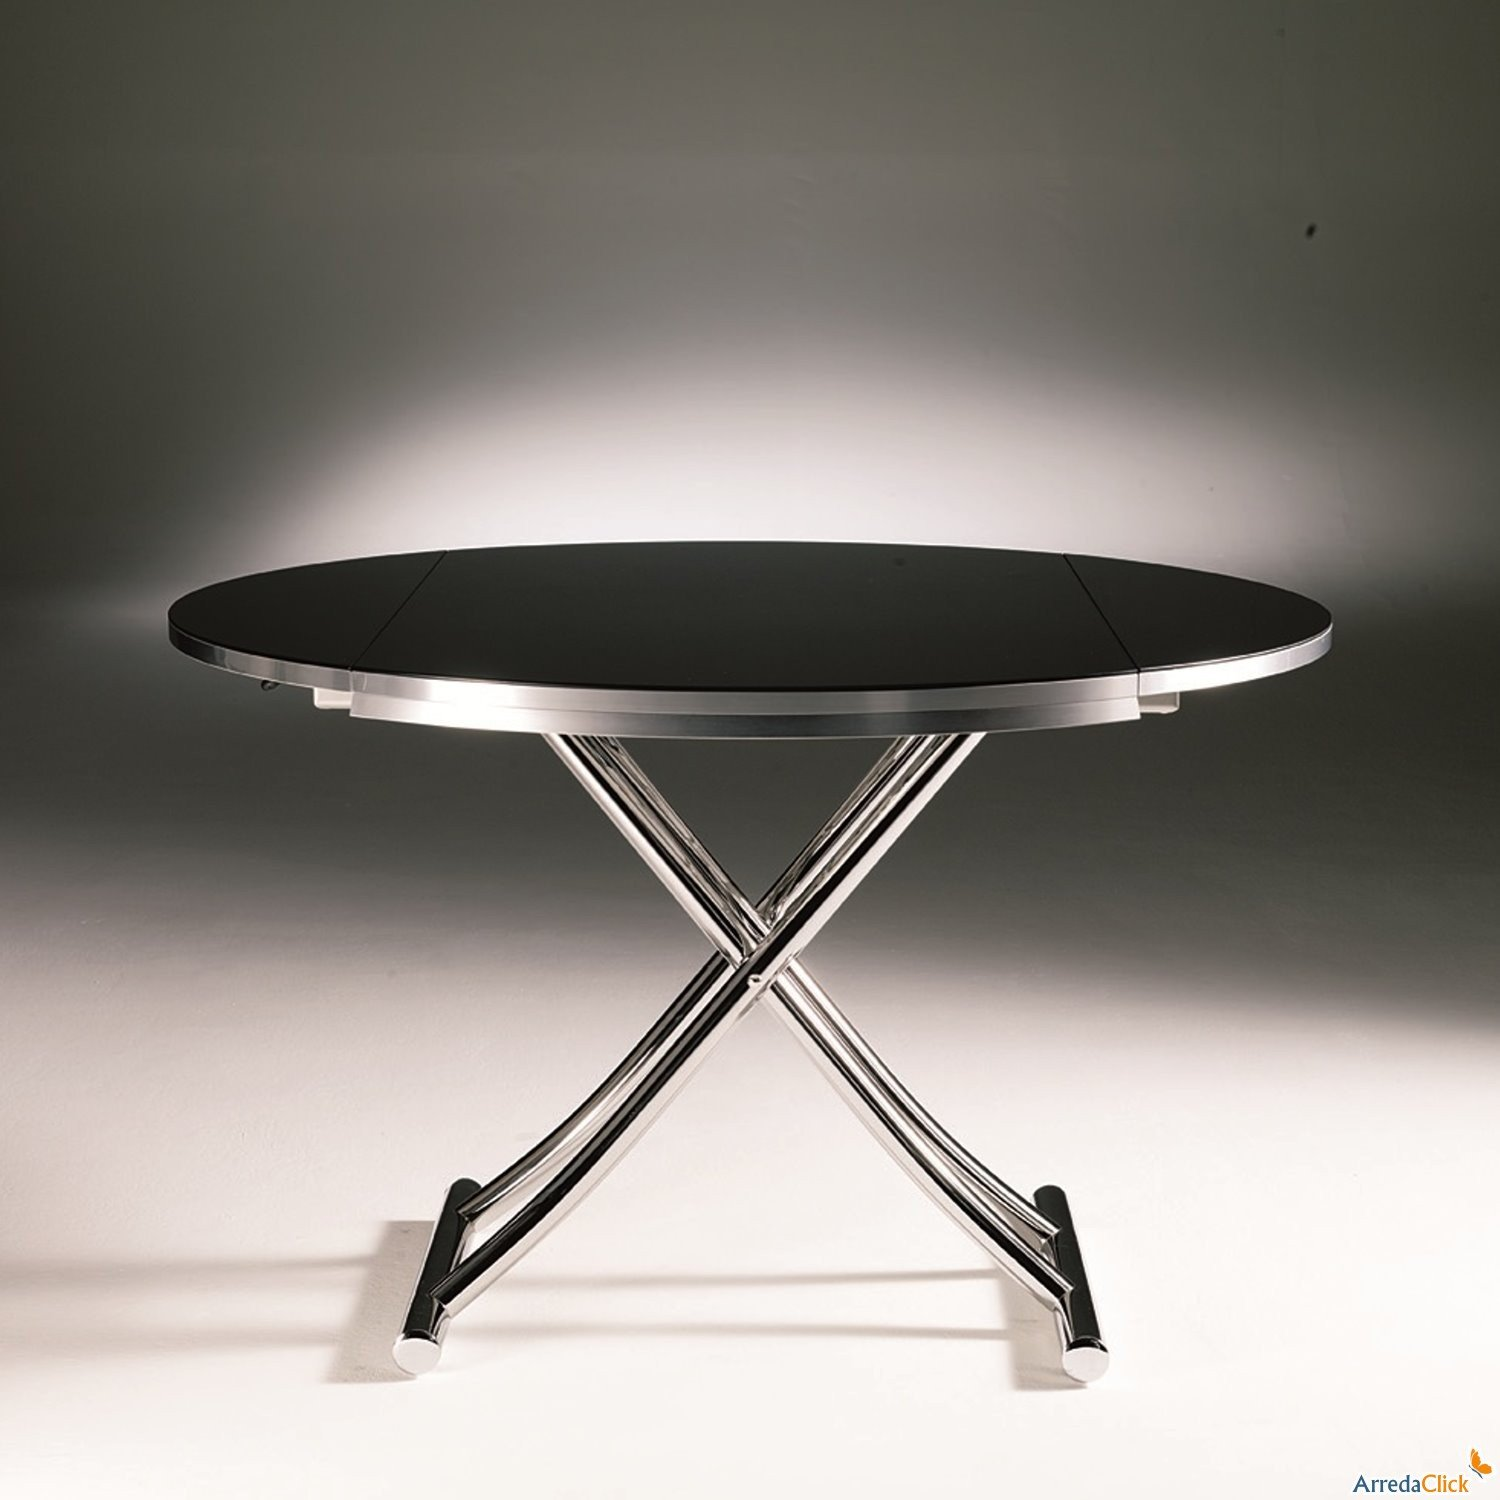 Table basse salon ronde ou ovale - Table basse ronde ou ovale ...